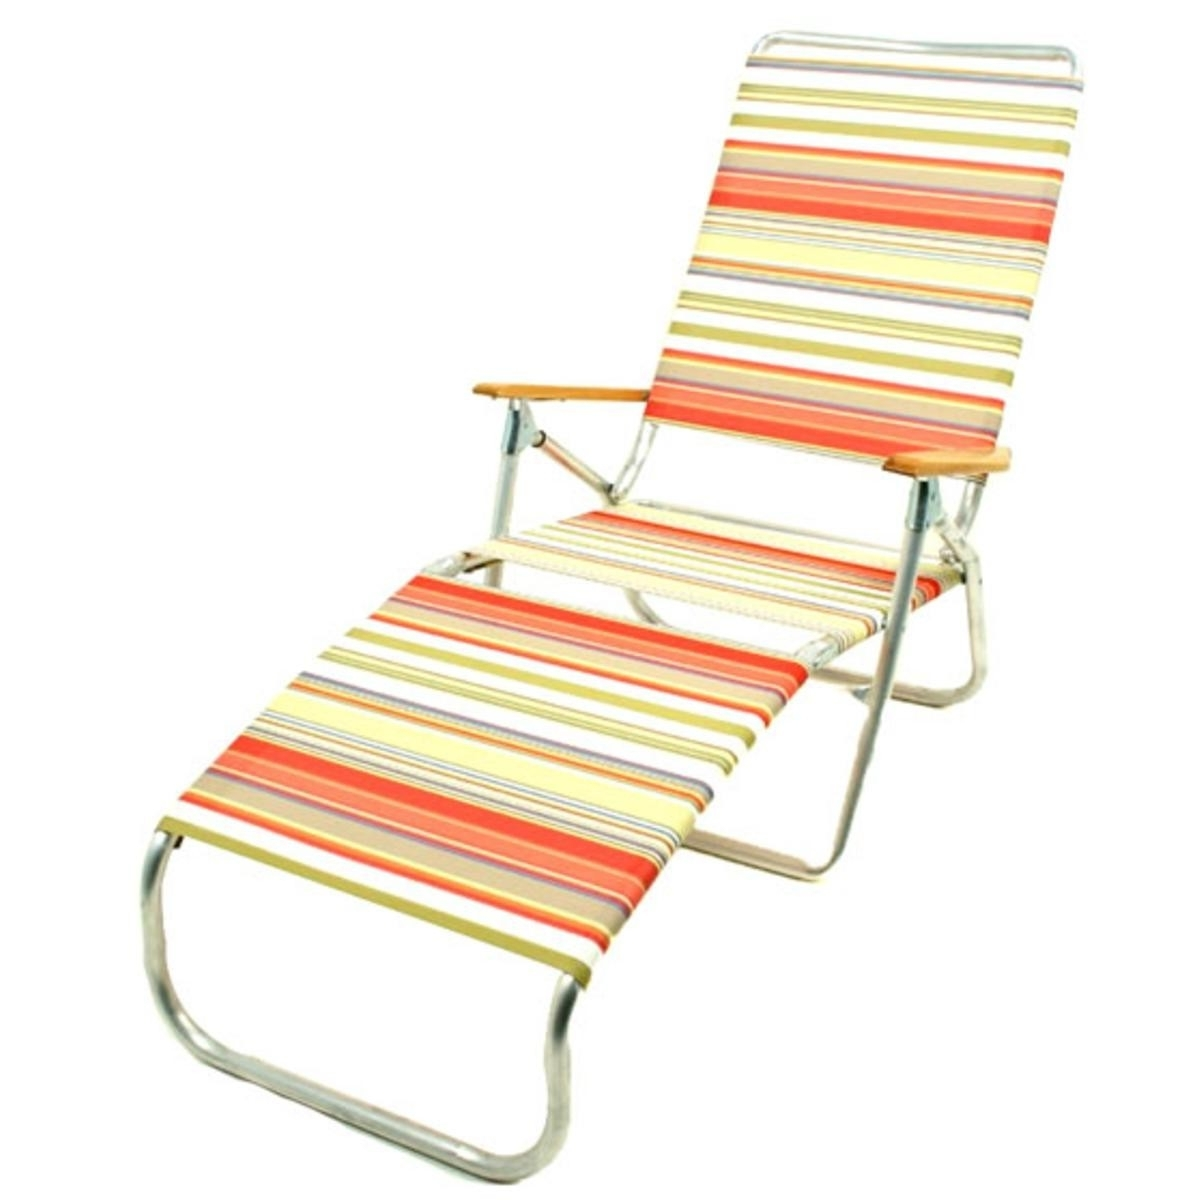 Chaise Lounge Beach Chairs Pertaining To Latest Telescope 821 Folding Chaise Lounge Beach Chair (View 2 of 15)